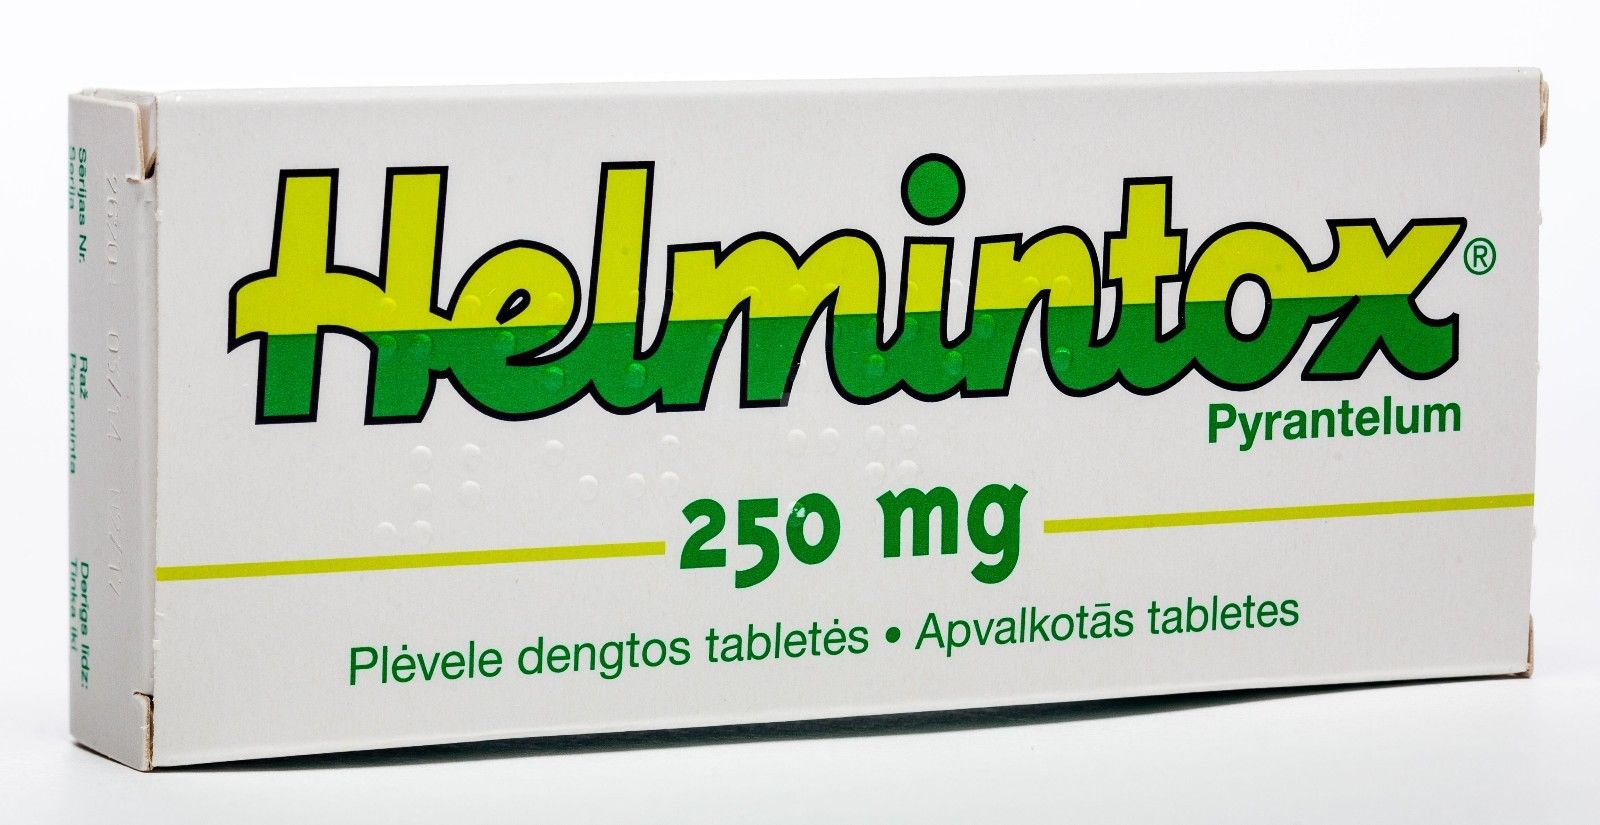 helmintox used to treat